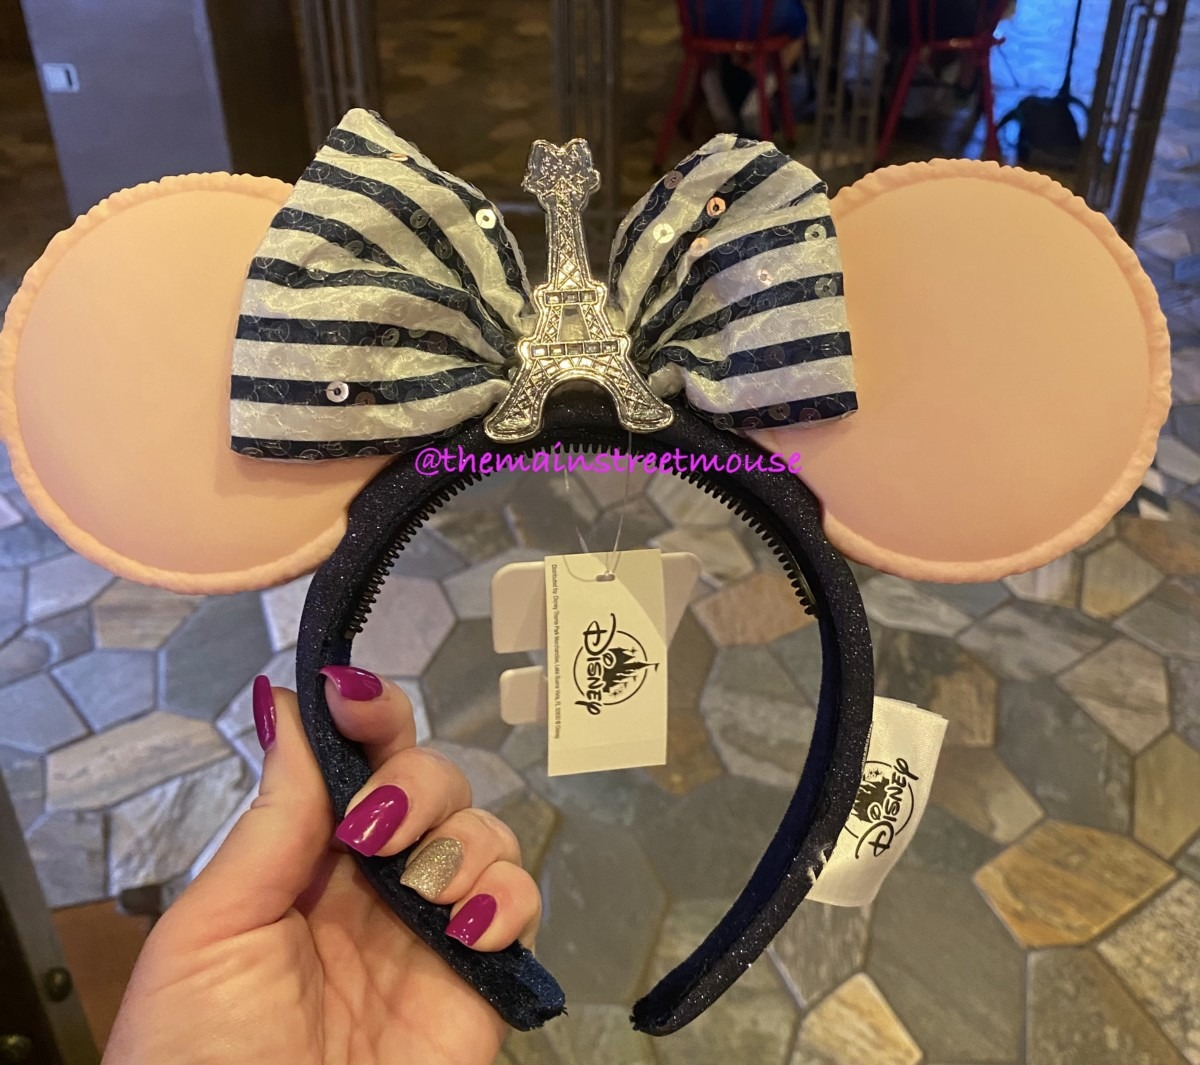 New Minnie Ear Headbands at Epcot! #disneystyle 3